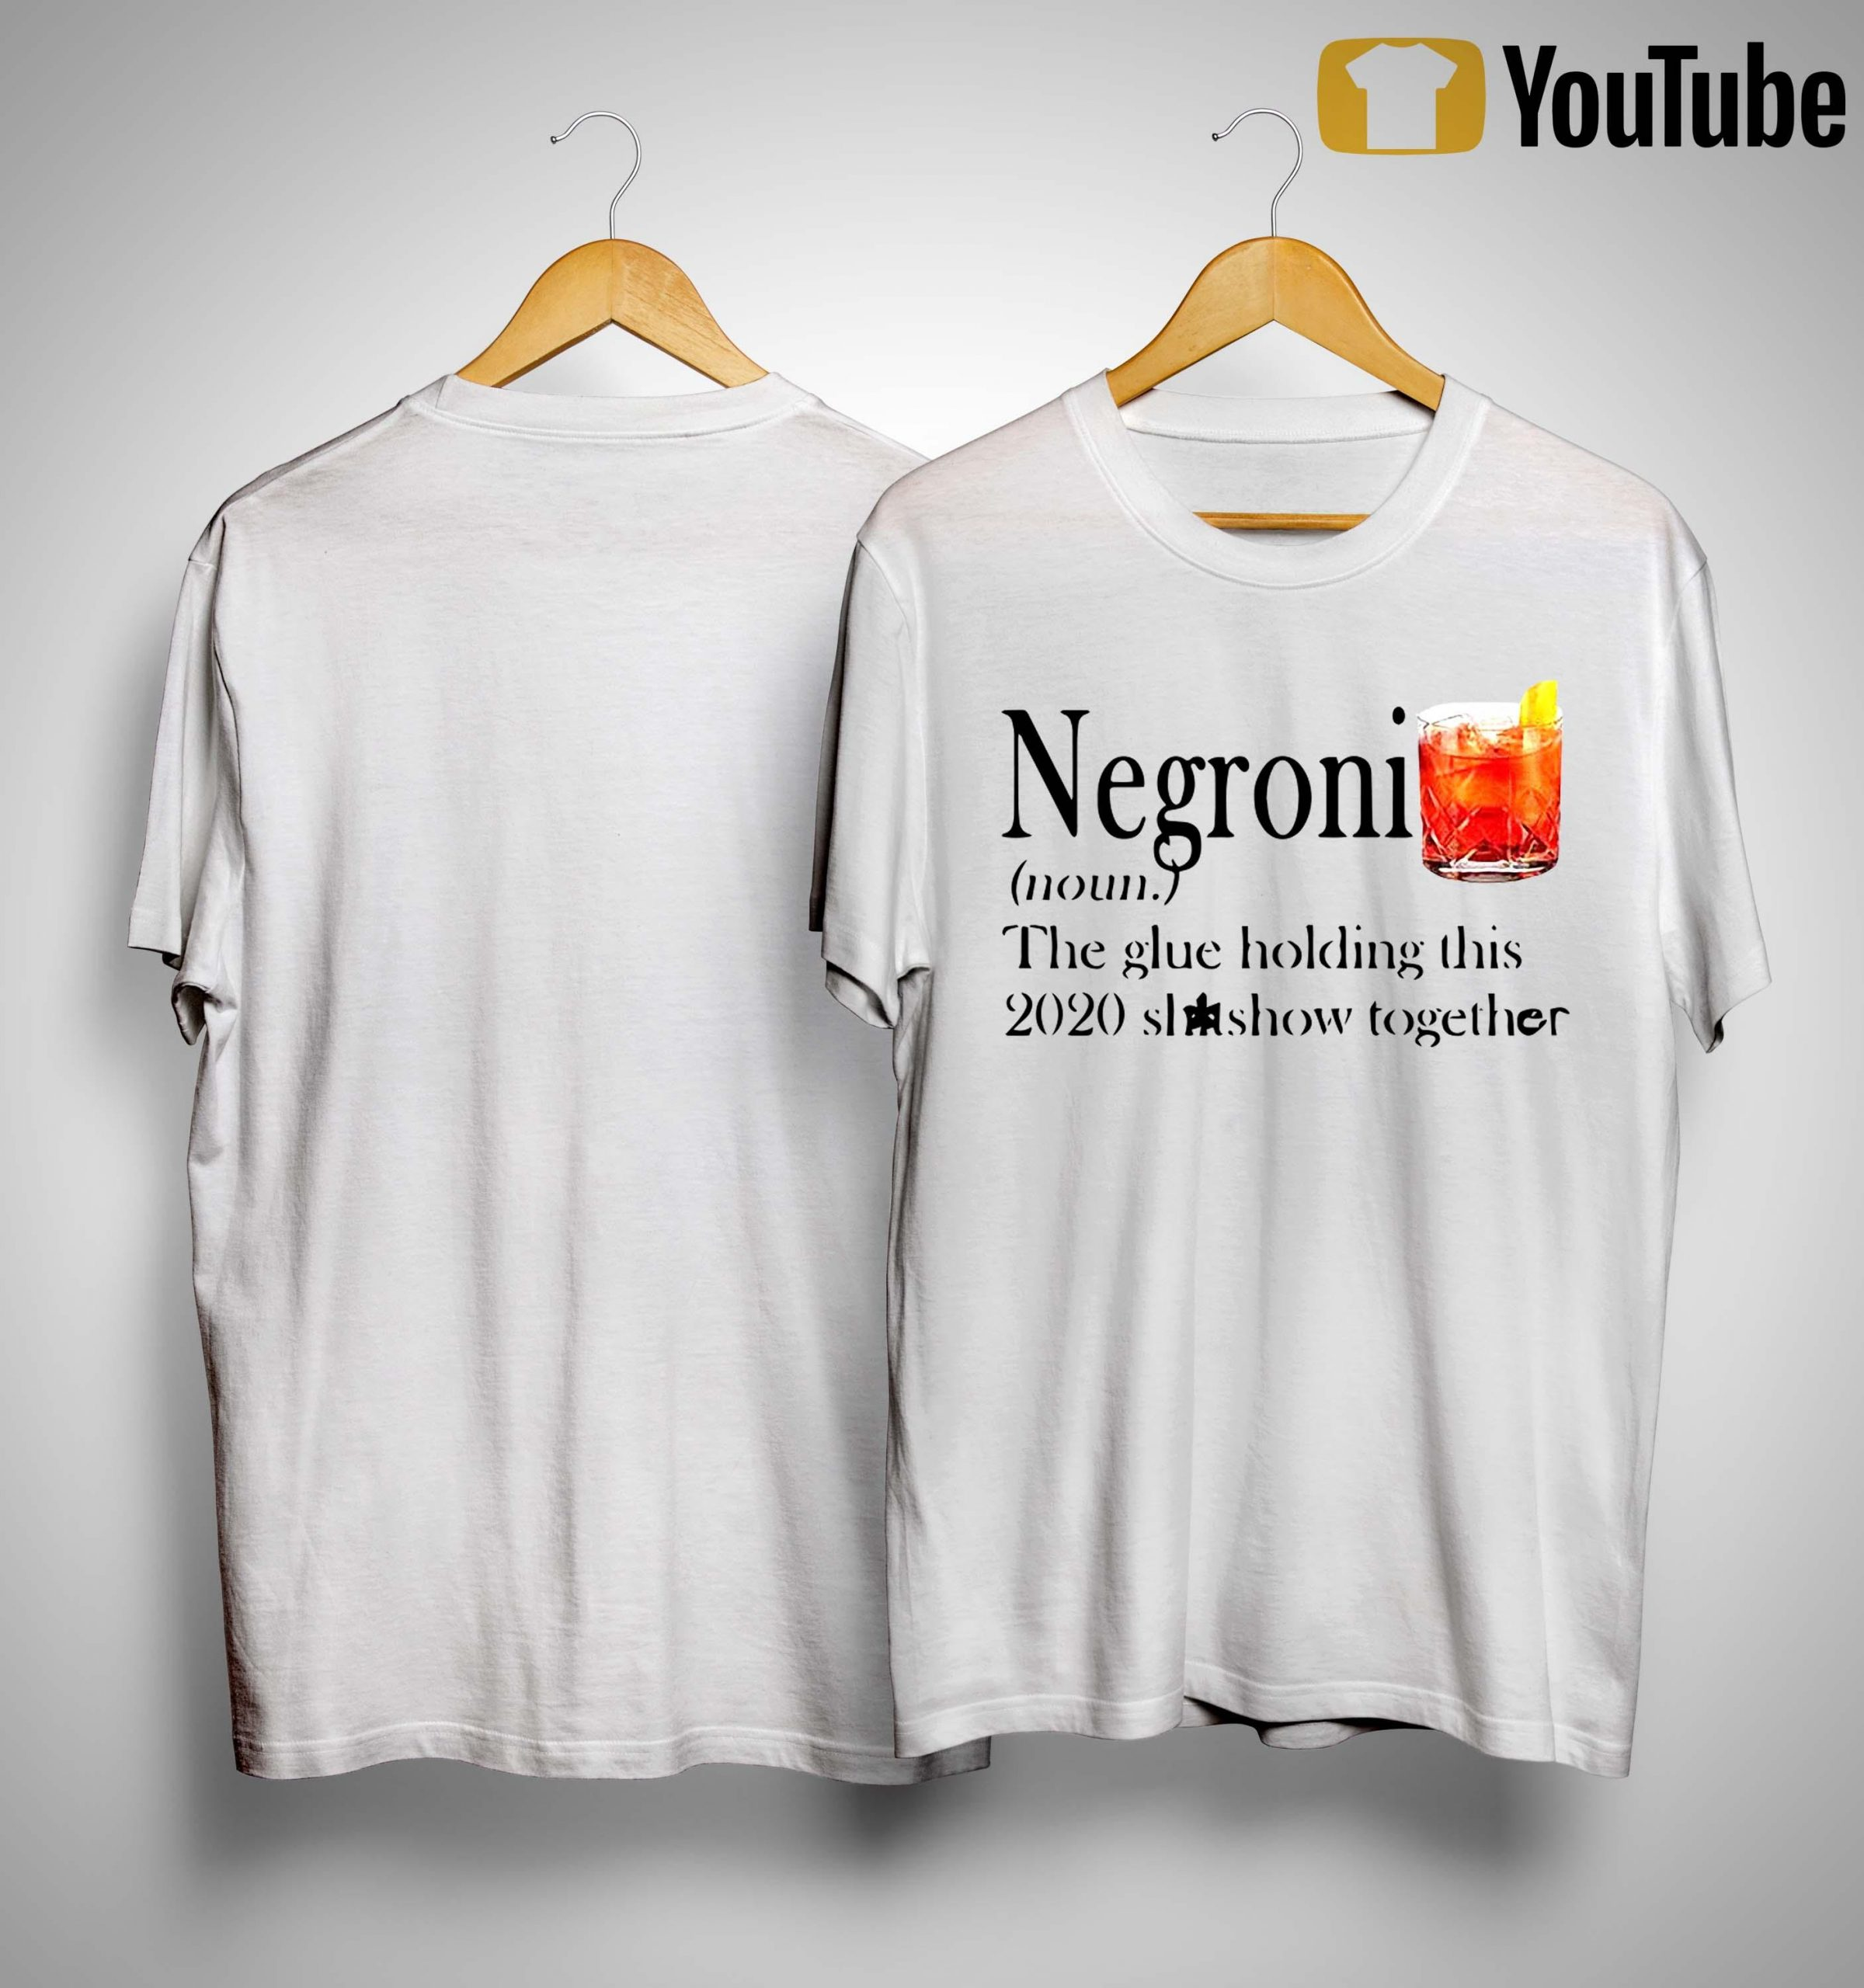 Negroni The Glue Holding This 2020 Shitshow Together Shirt